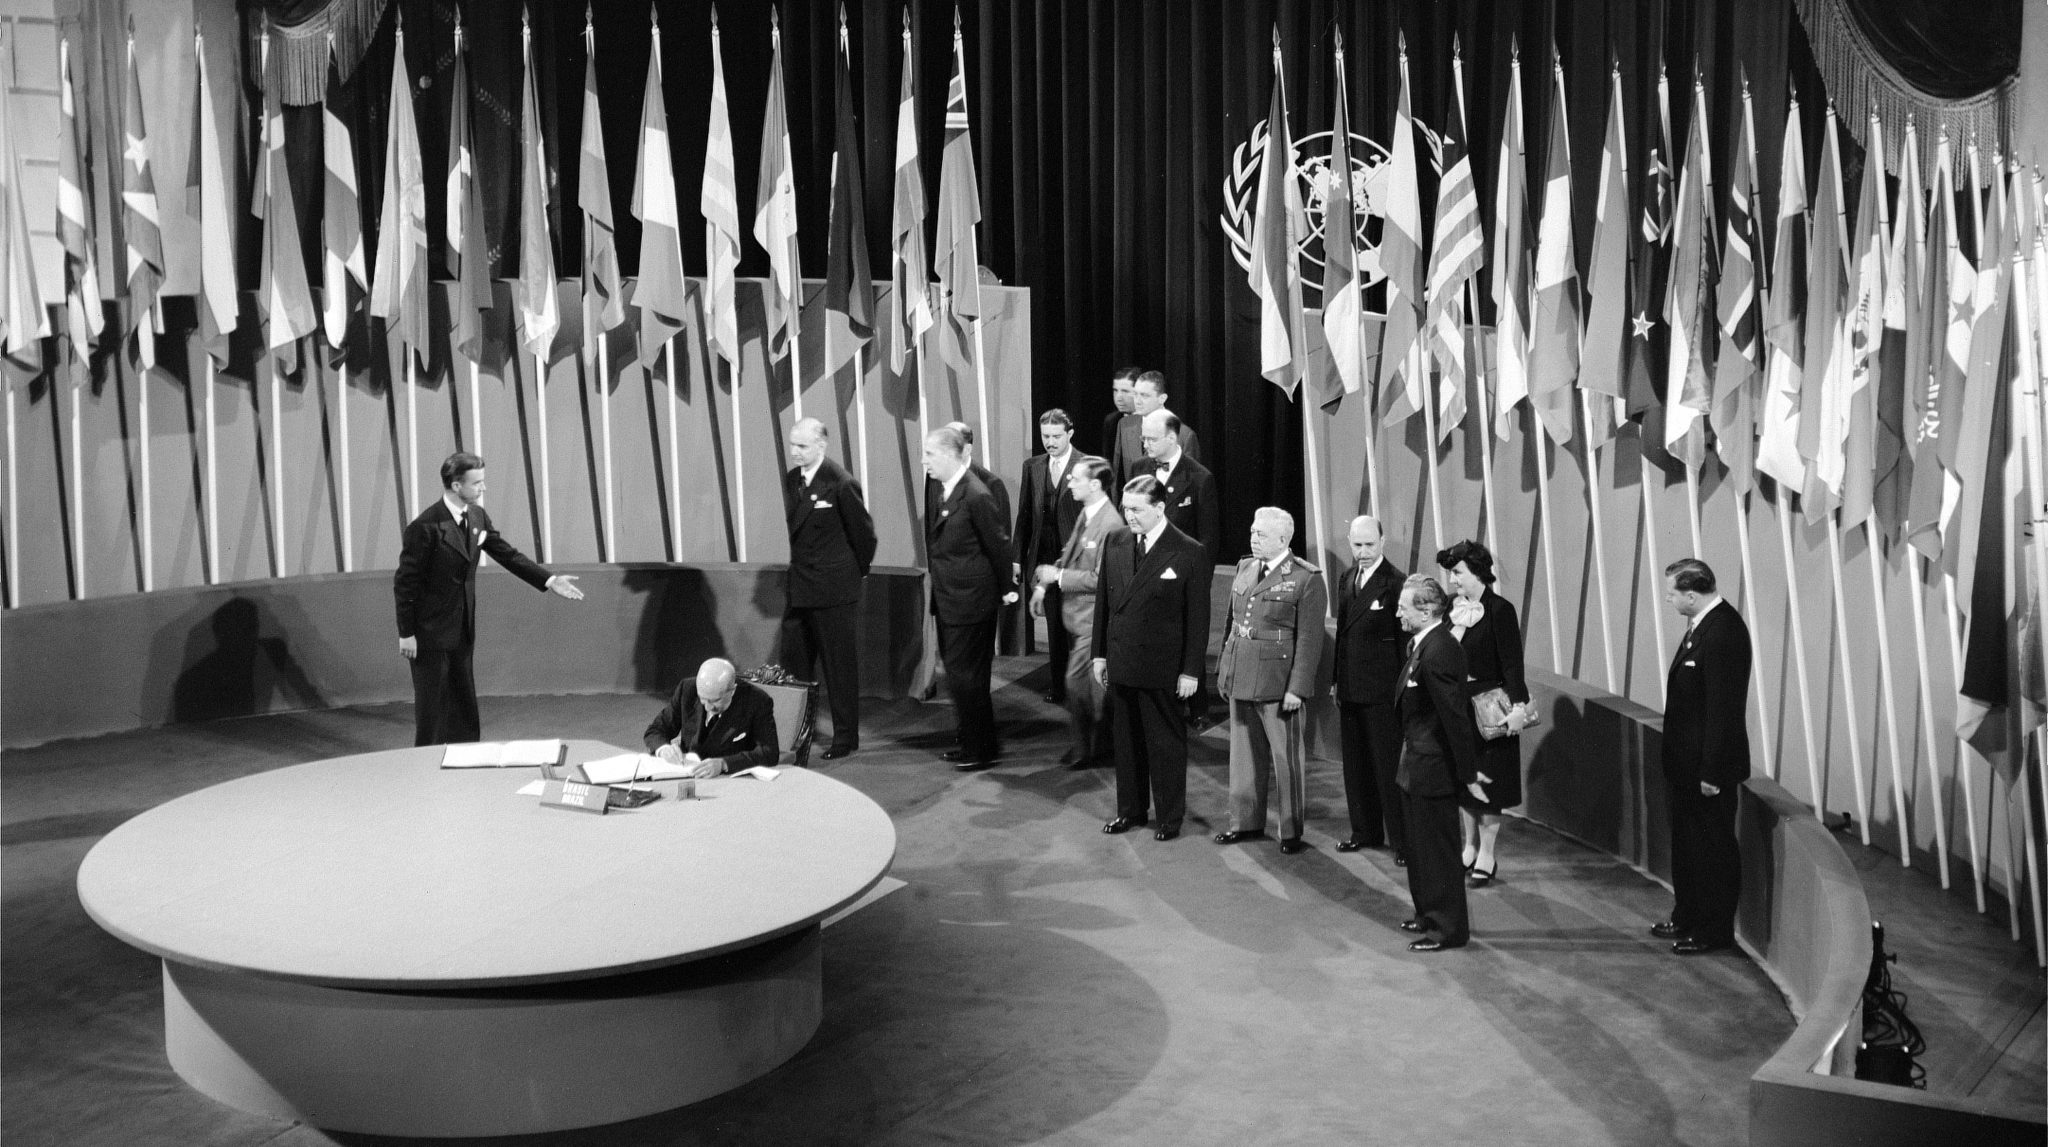 a history of the universal declaration of human rights signed after the world war ii The united states and modern human rights: a brief history the united states has a mixed record on human rights despite early leadership on human rights during the 20th century, the united states, unlike many other nations around the world, has not ratified most of the major human rights treaties.